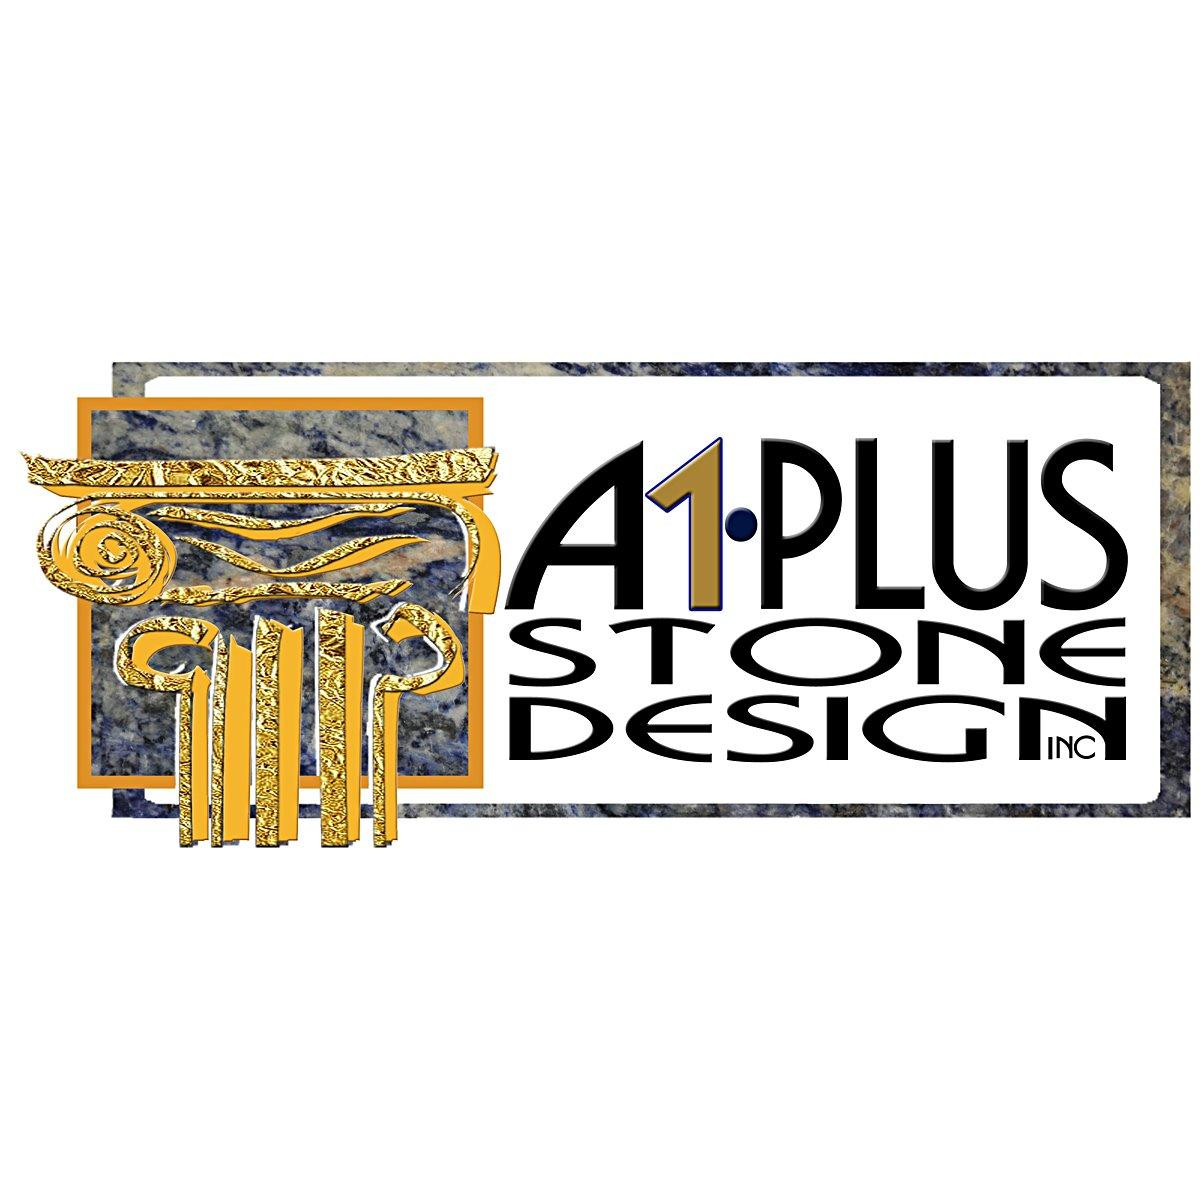 A1 plus stone design lake worth fl business page for Bathrooms plus lake worth fl